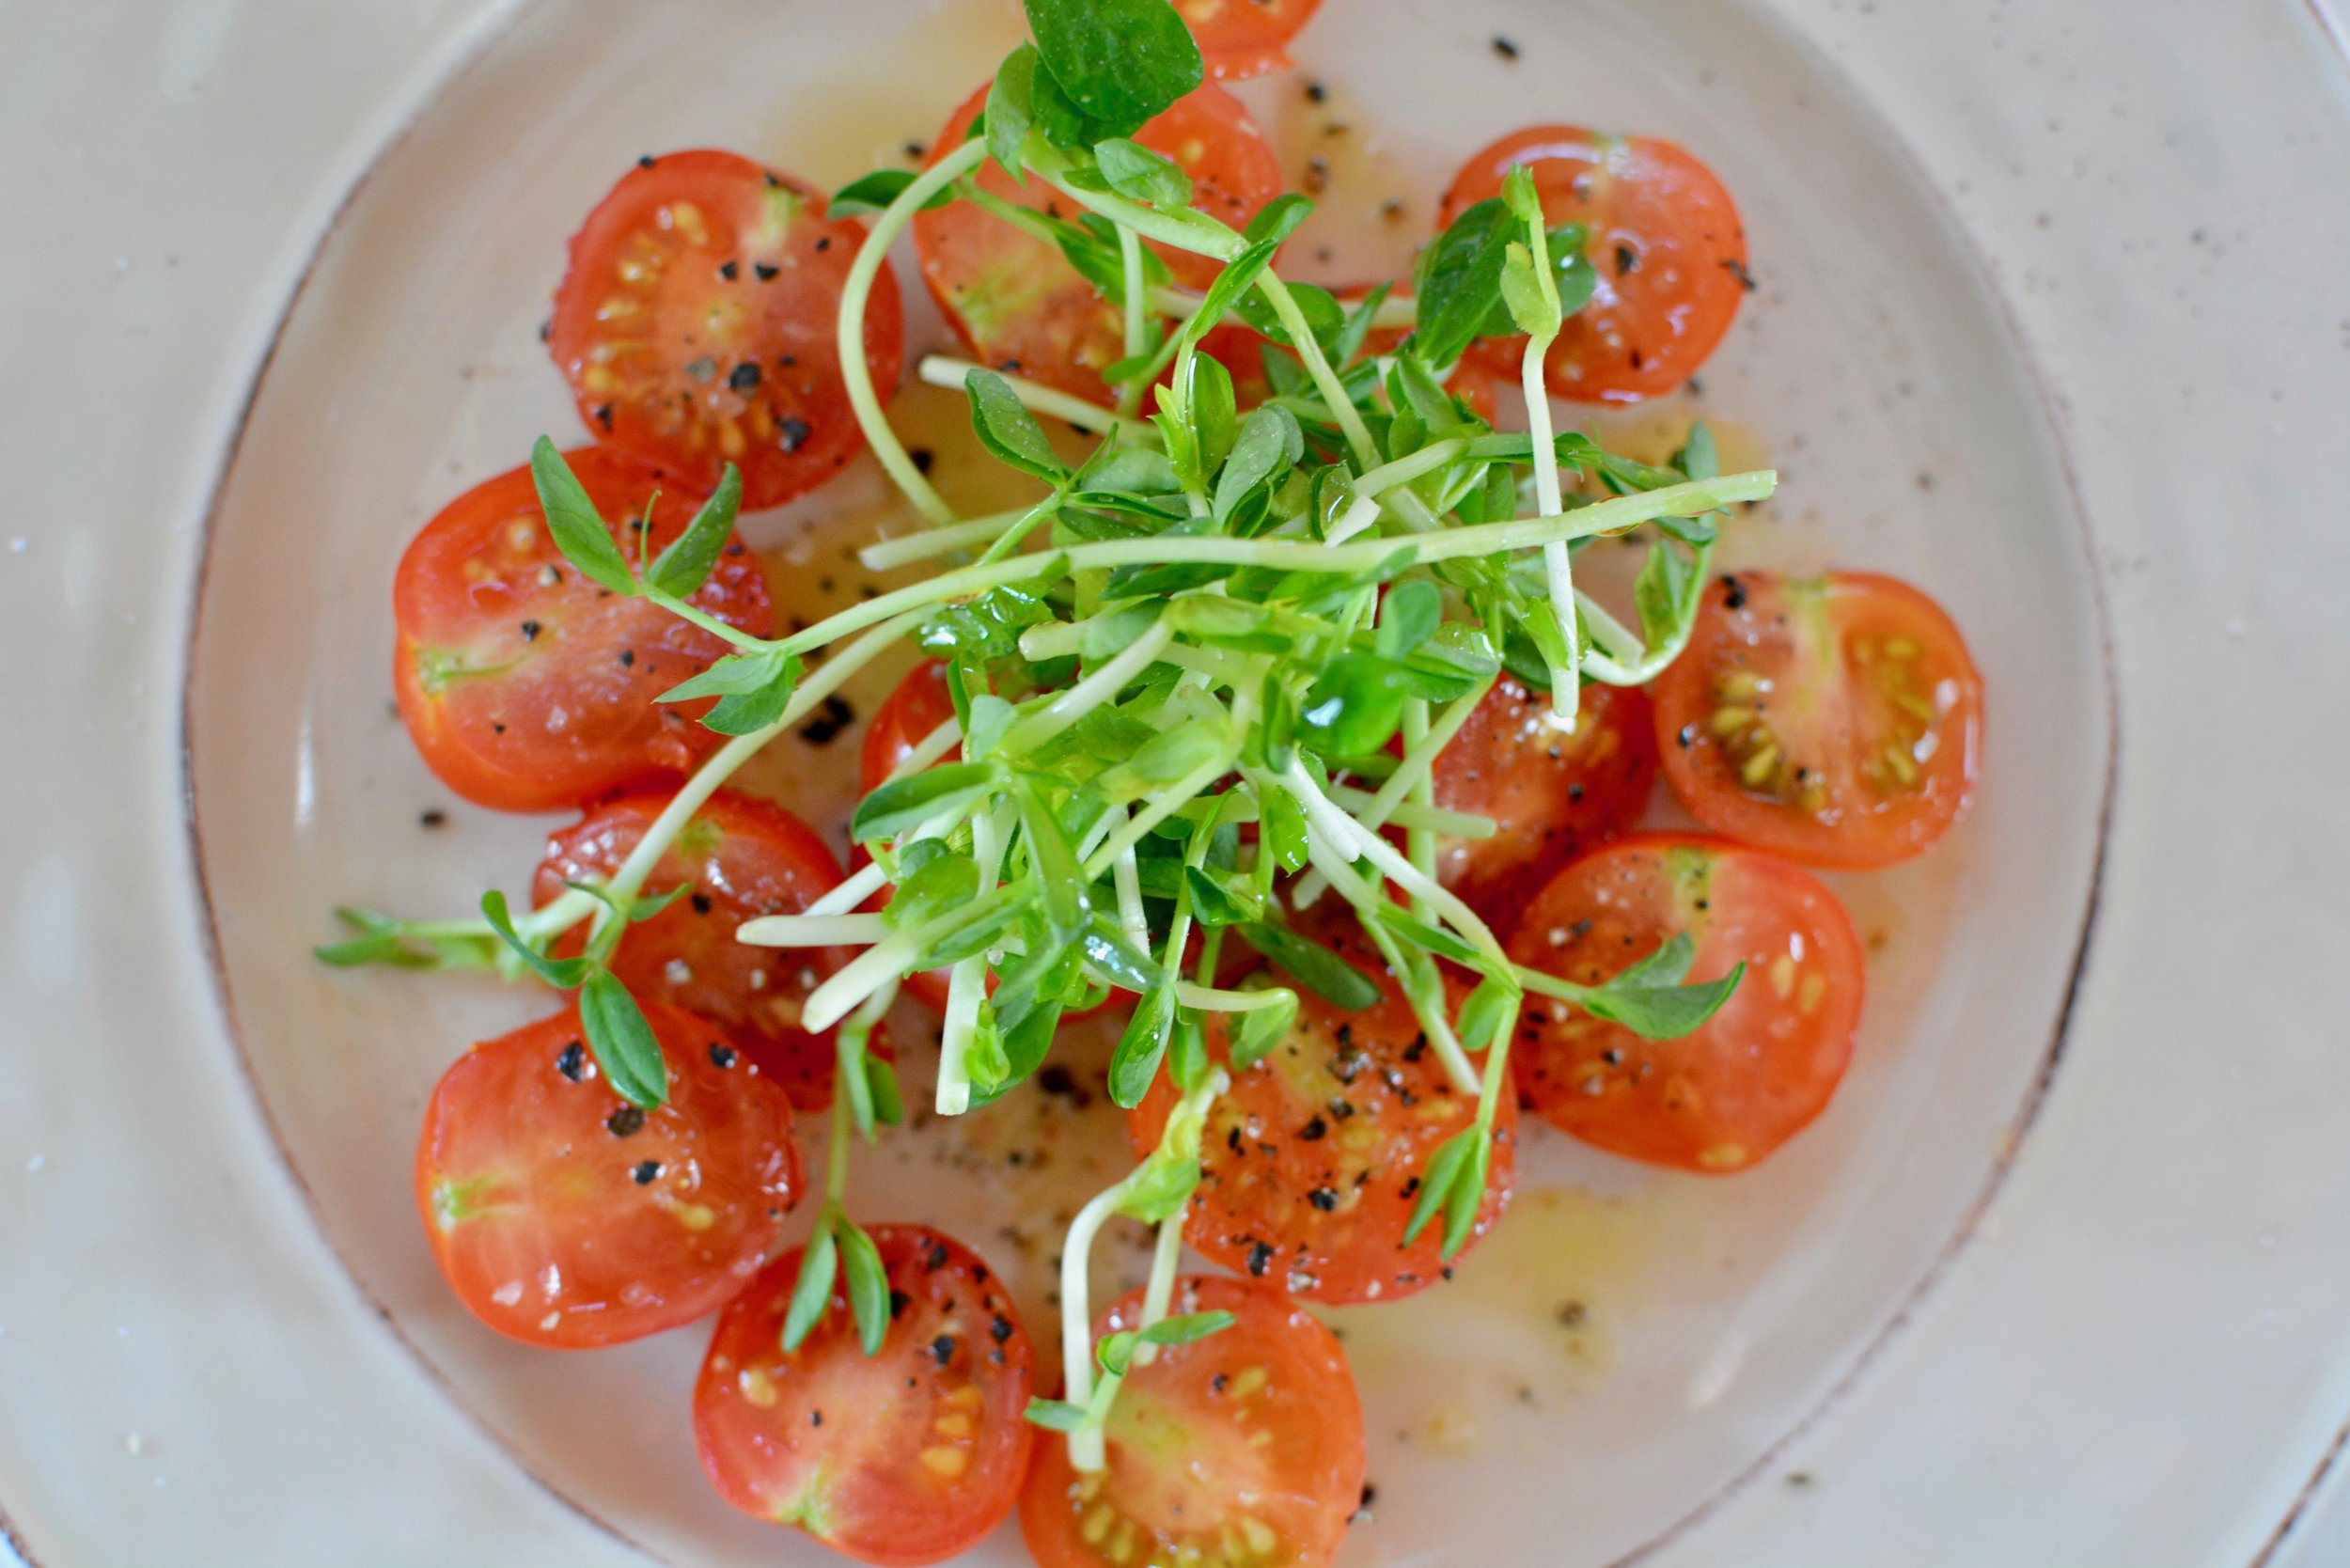 tomatoes are easily available and liked by most and make an excellent prebiotic